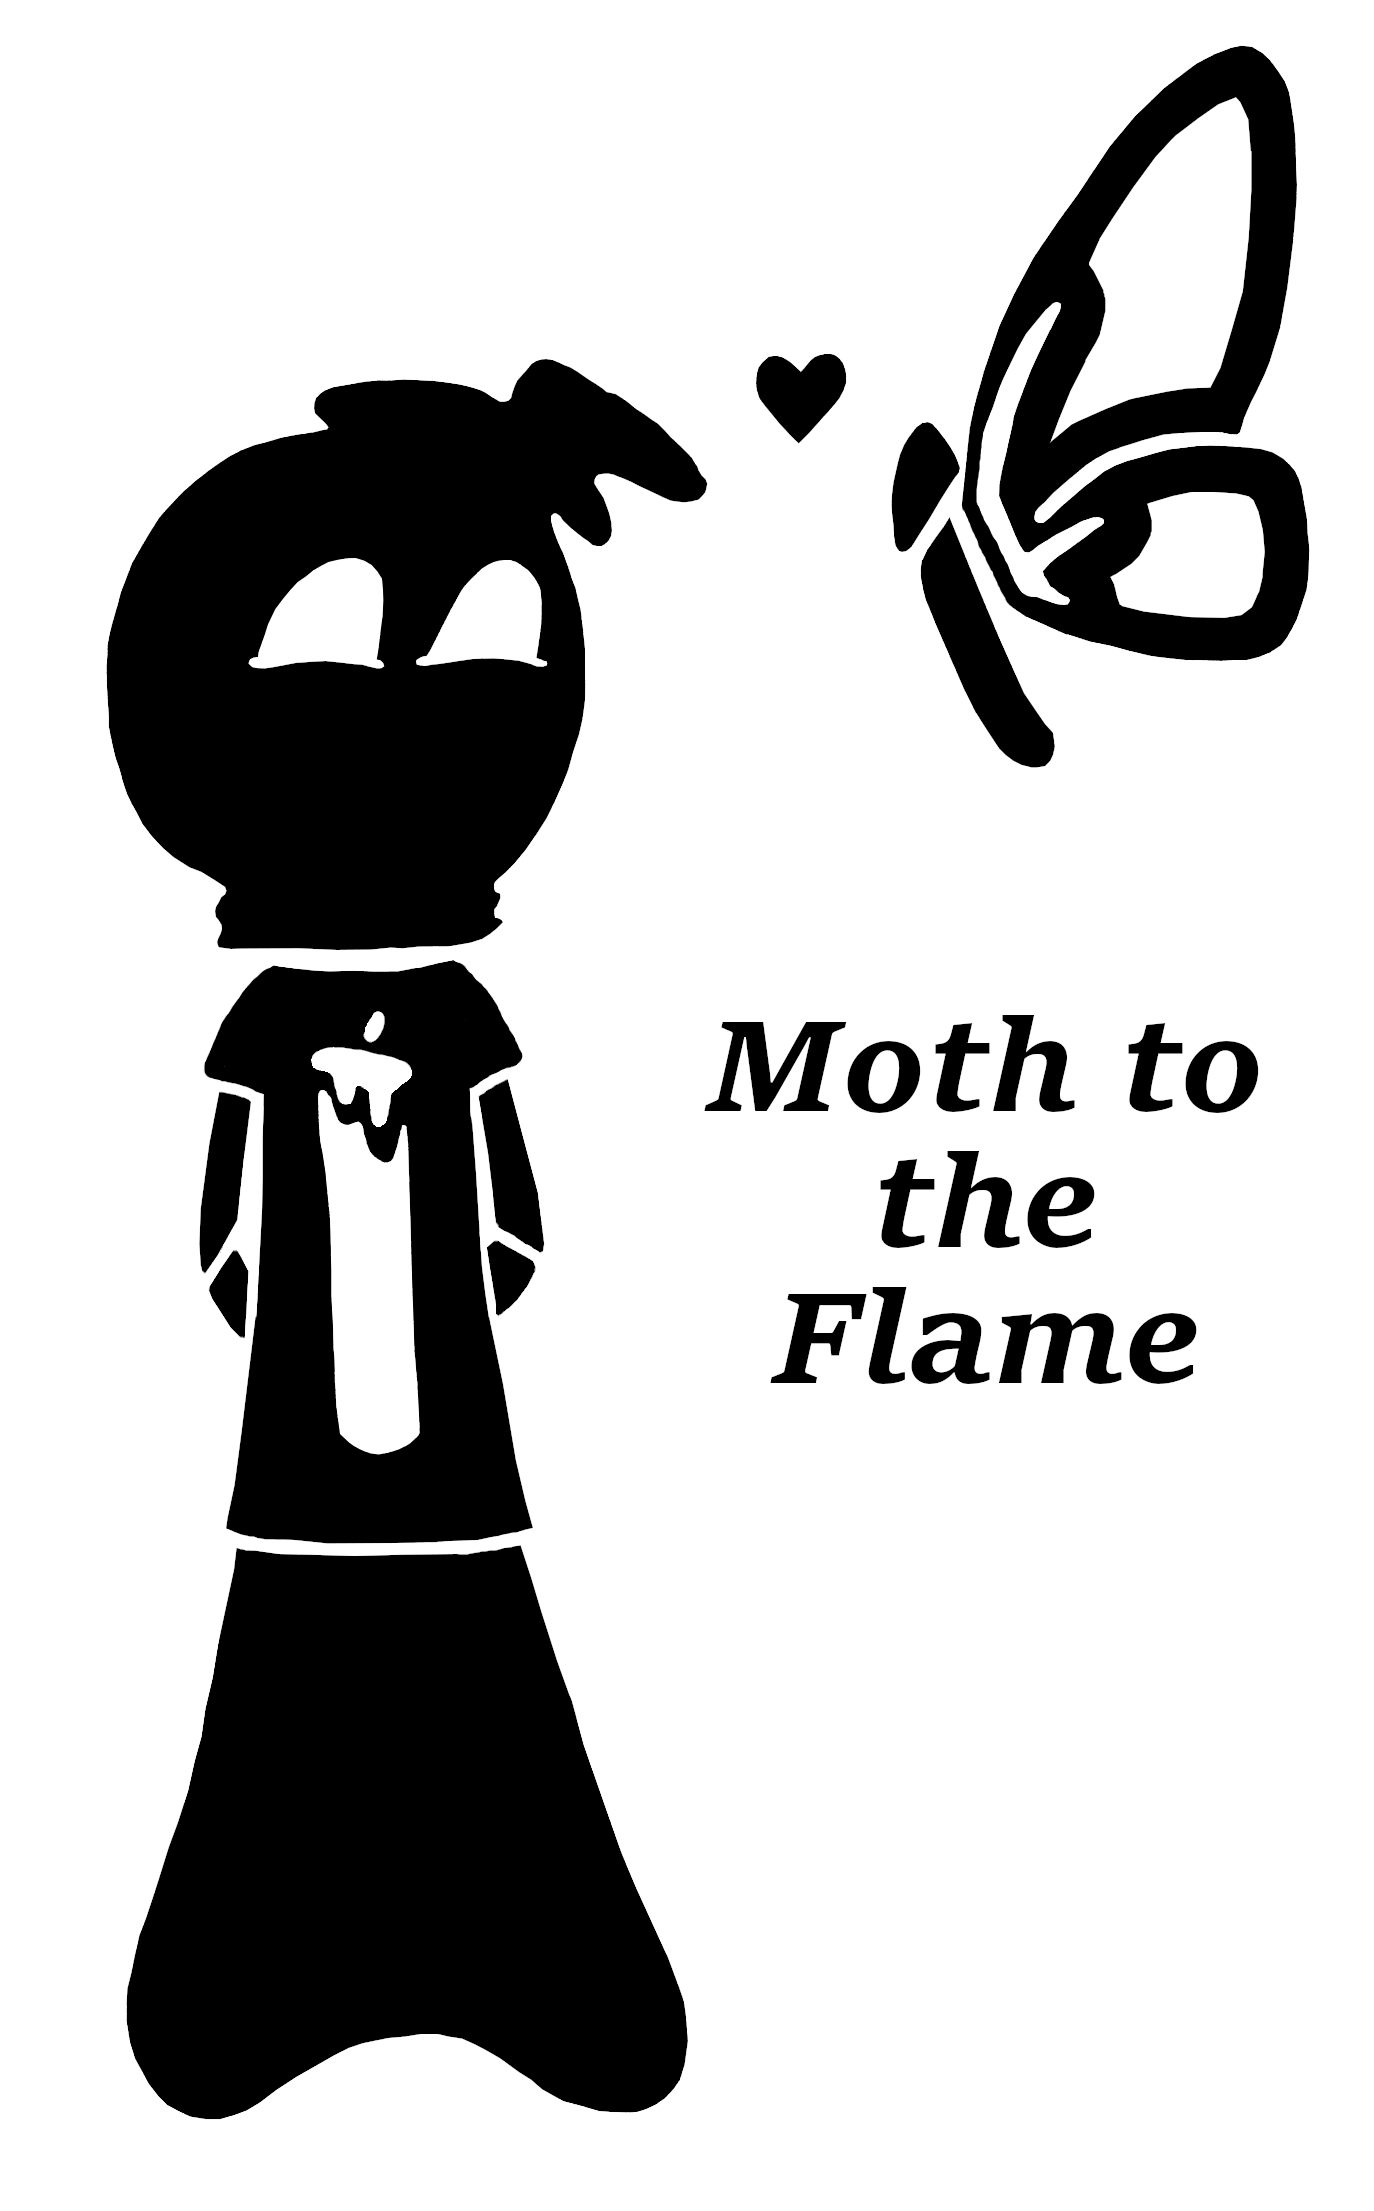 MysteryElement — Moth to a Flame